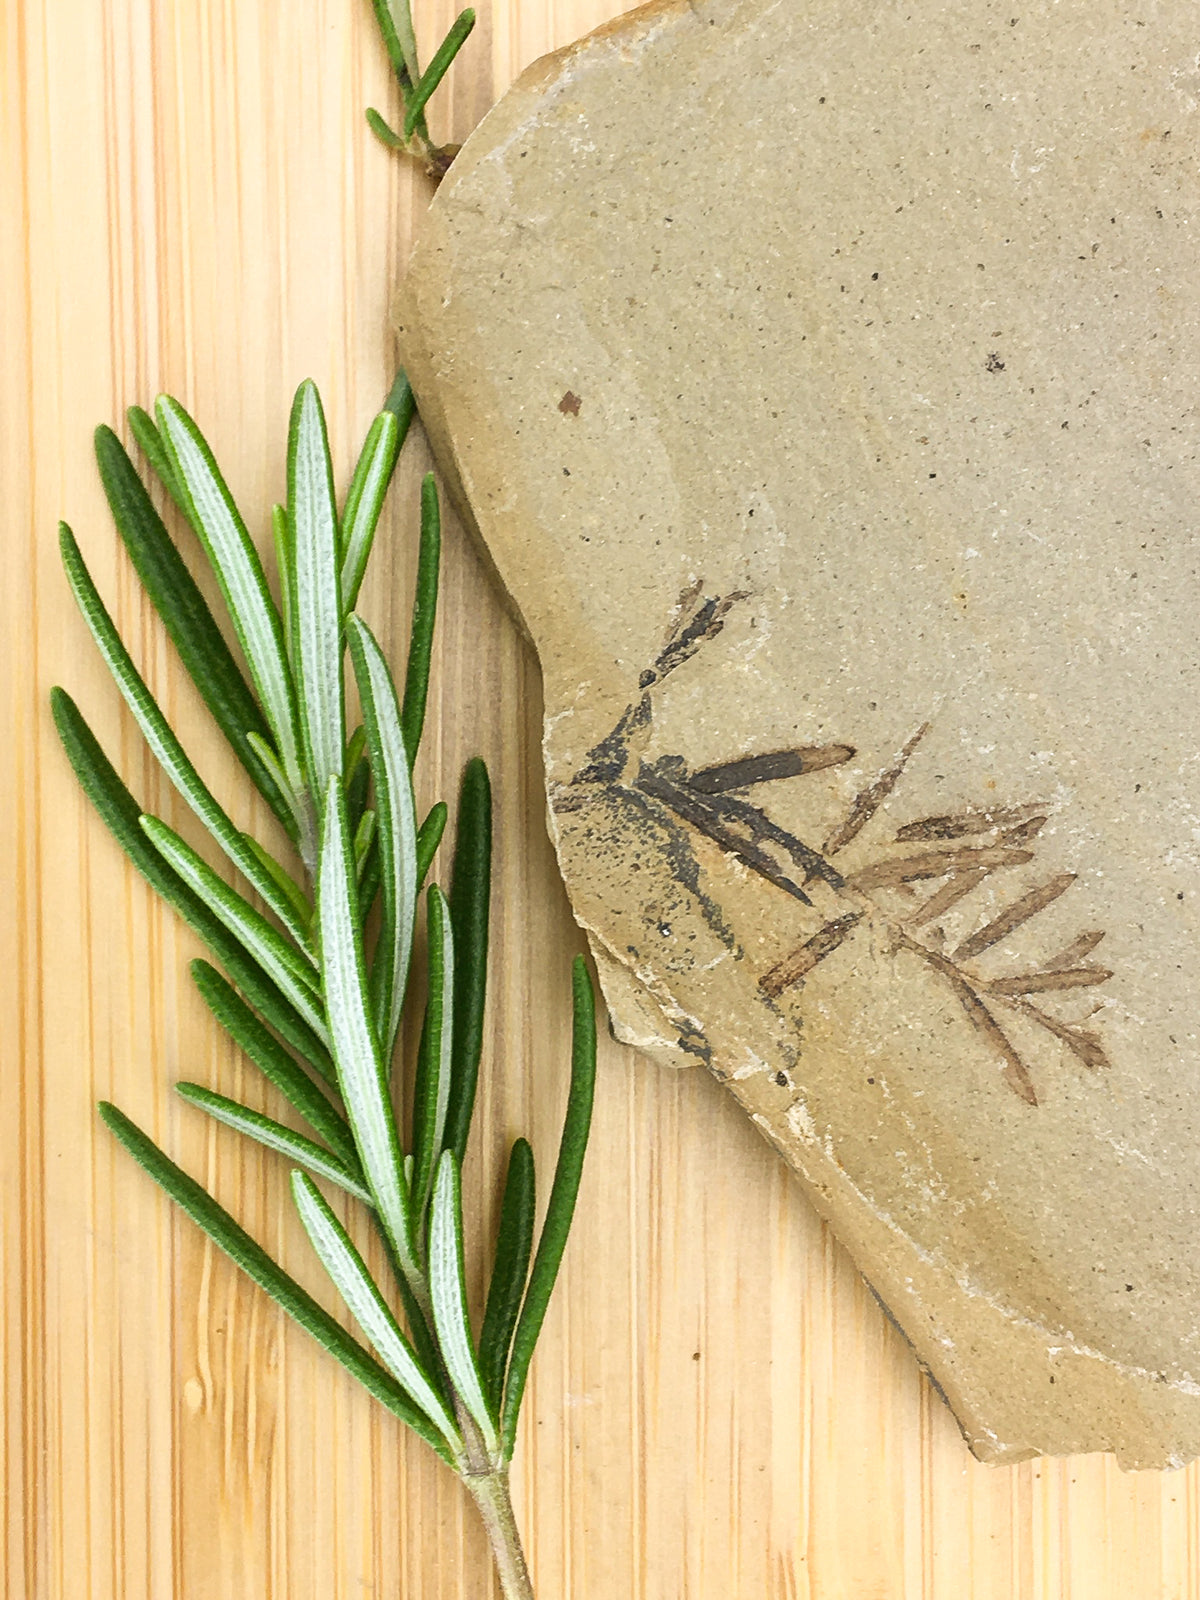 Metasequoia leaf on a flat grey sedimentary rock. The  fossil is lying on a grained wood surface, it is contrasted with a sprig of fresh rosemary